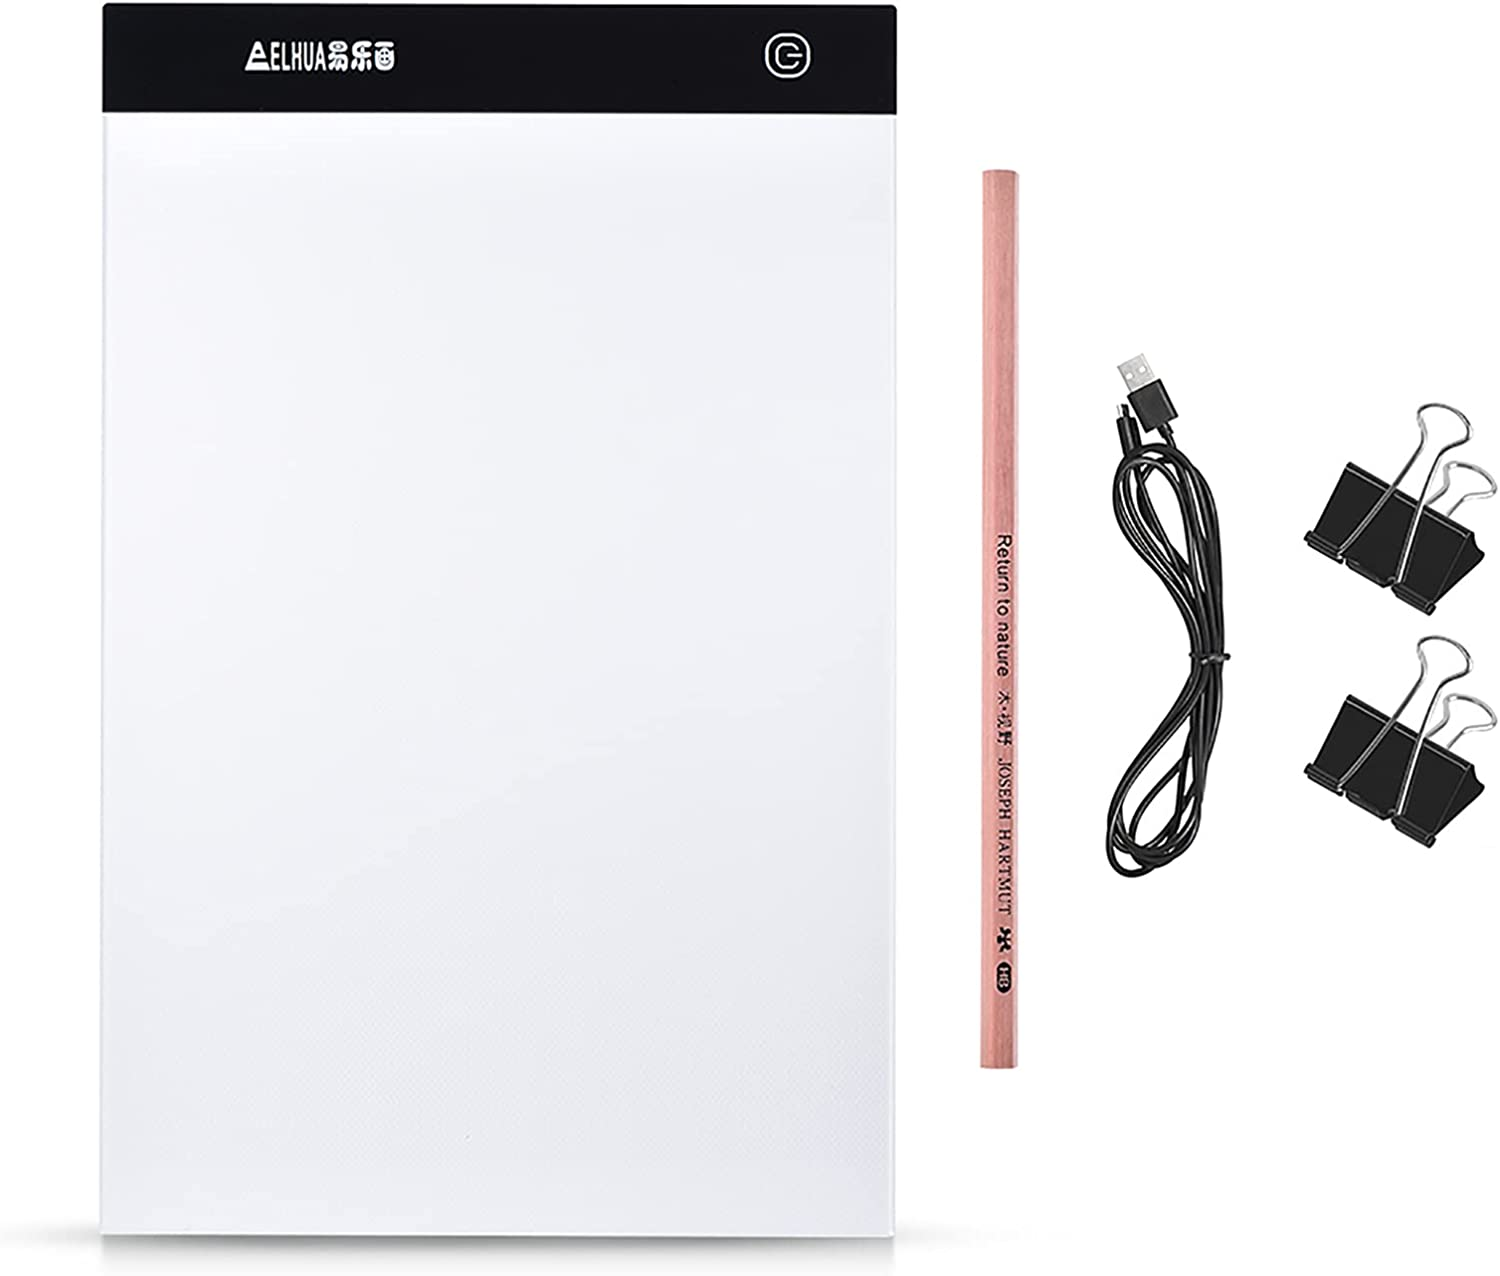 Aibecy1 Portable A4 LED Light Box Oakland Mall outlet Tracer Drawing Bo Copy Tracing